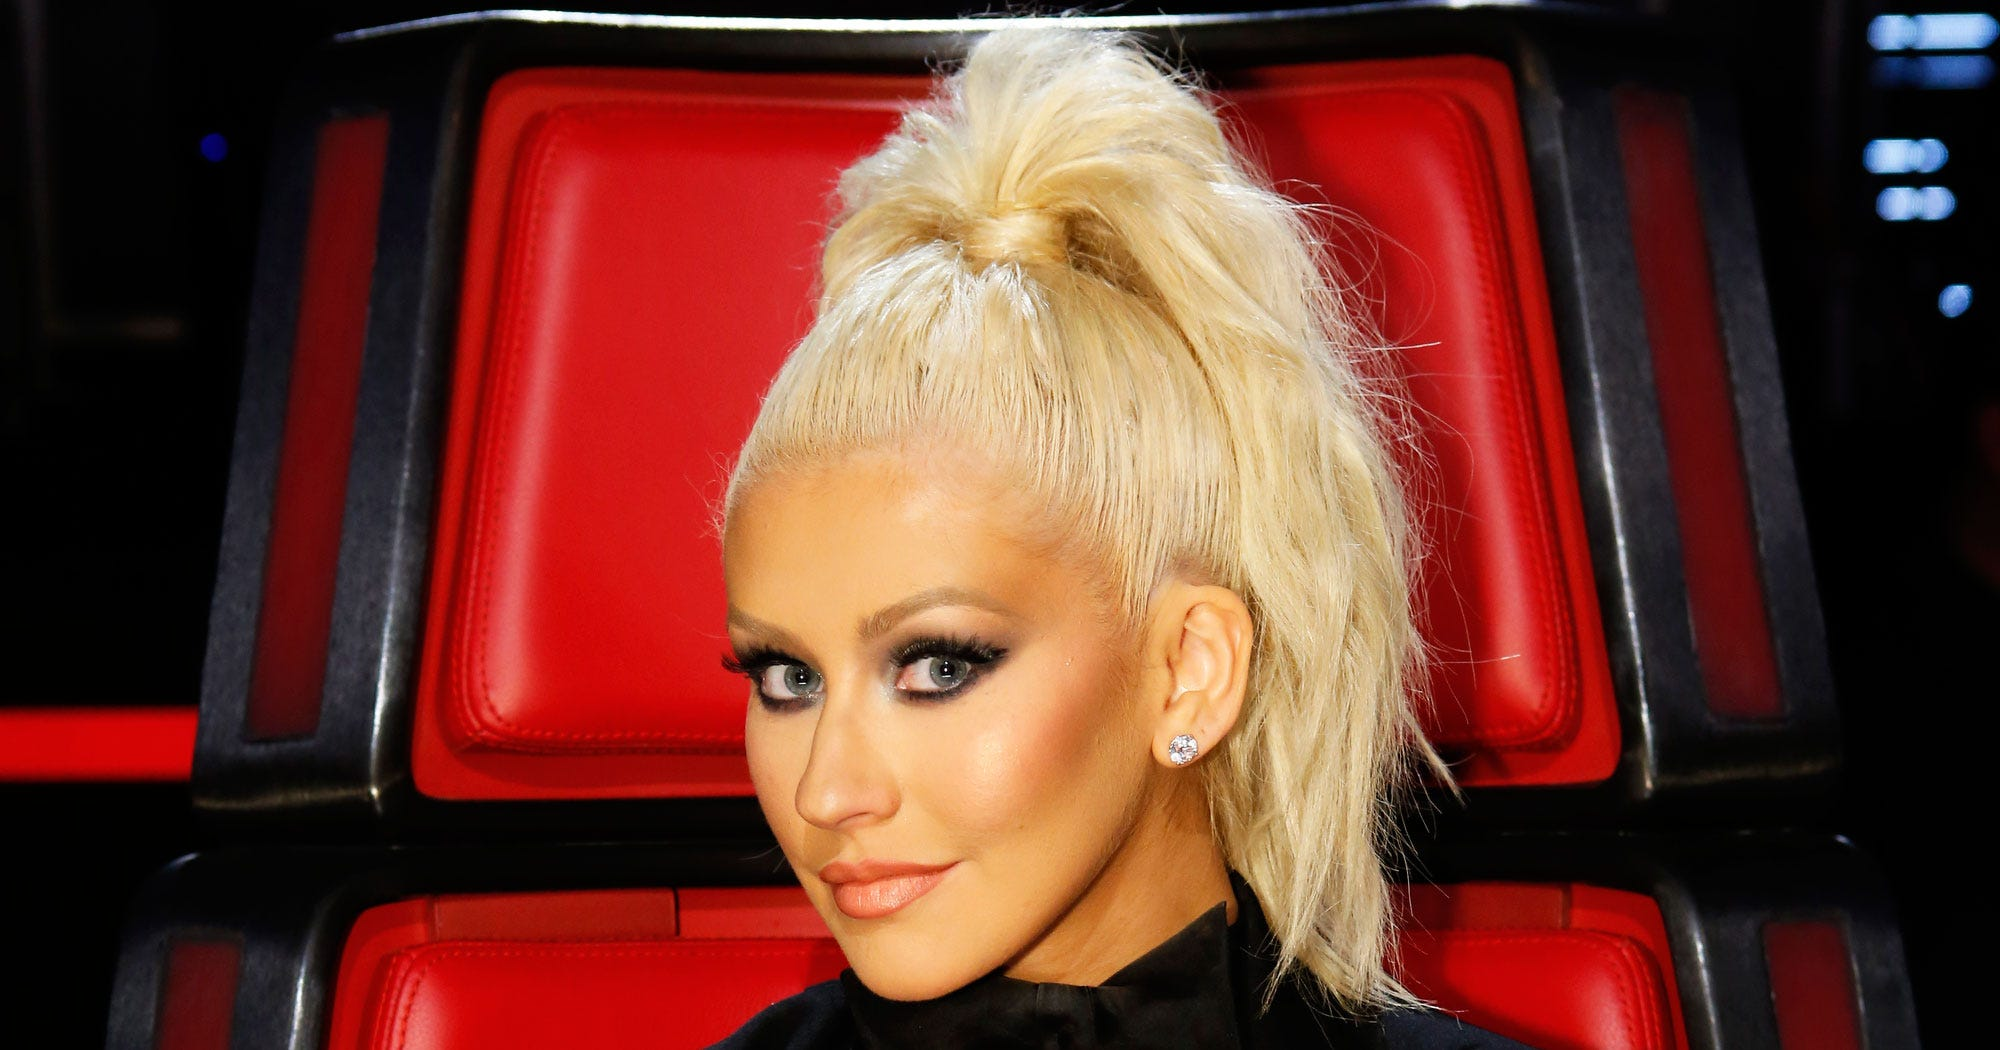 Amanda Tosch Wiki christina aguilera movies songs: christina aguilera